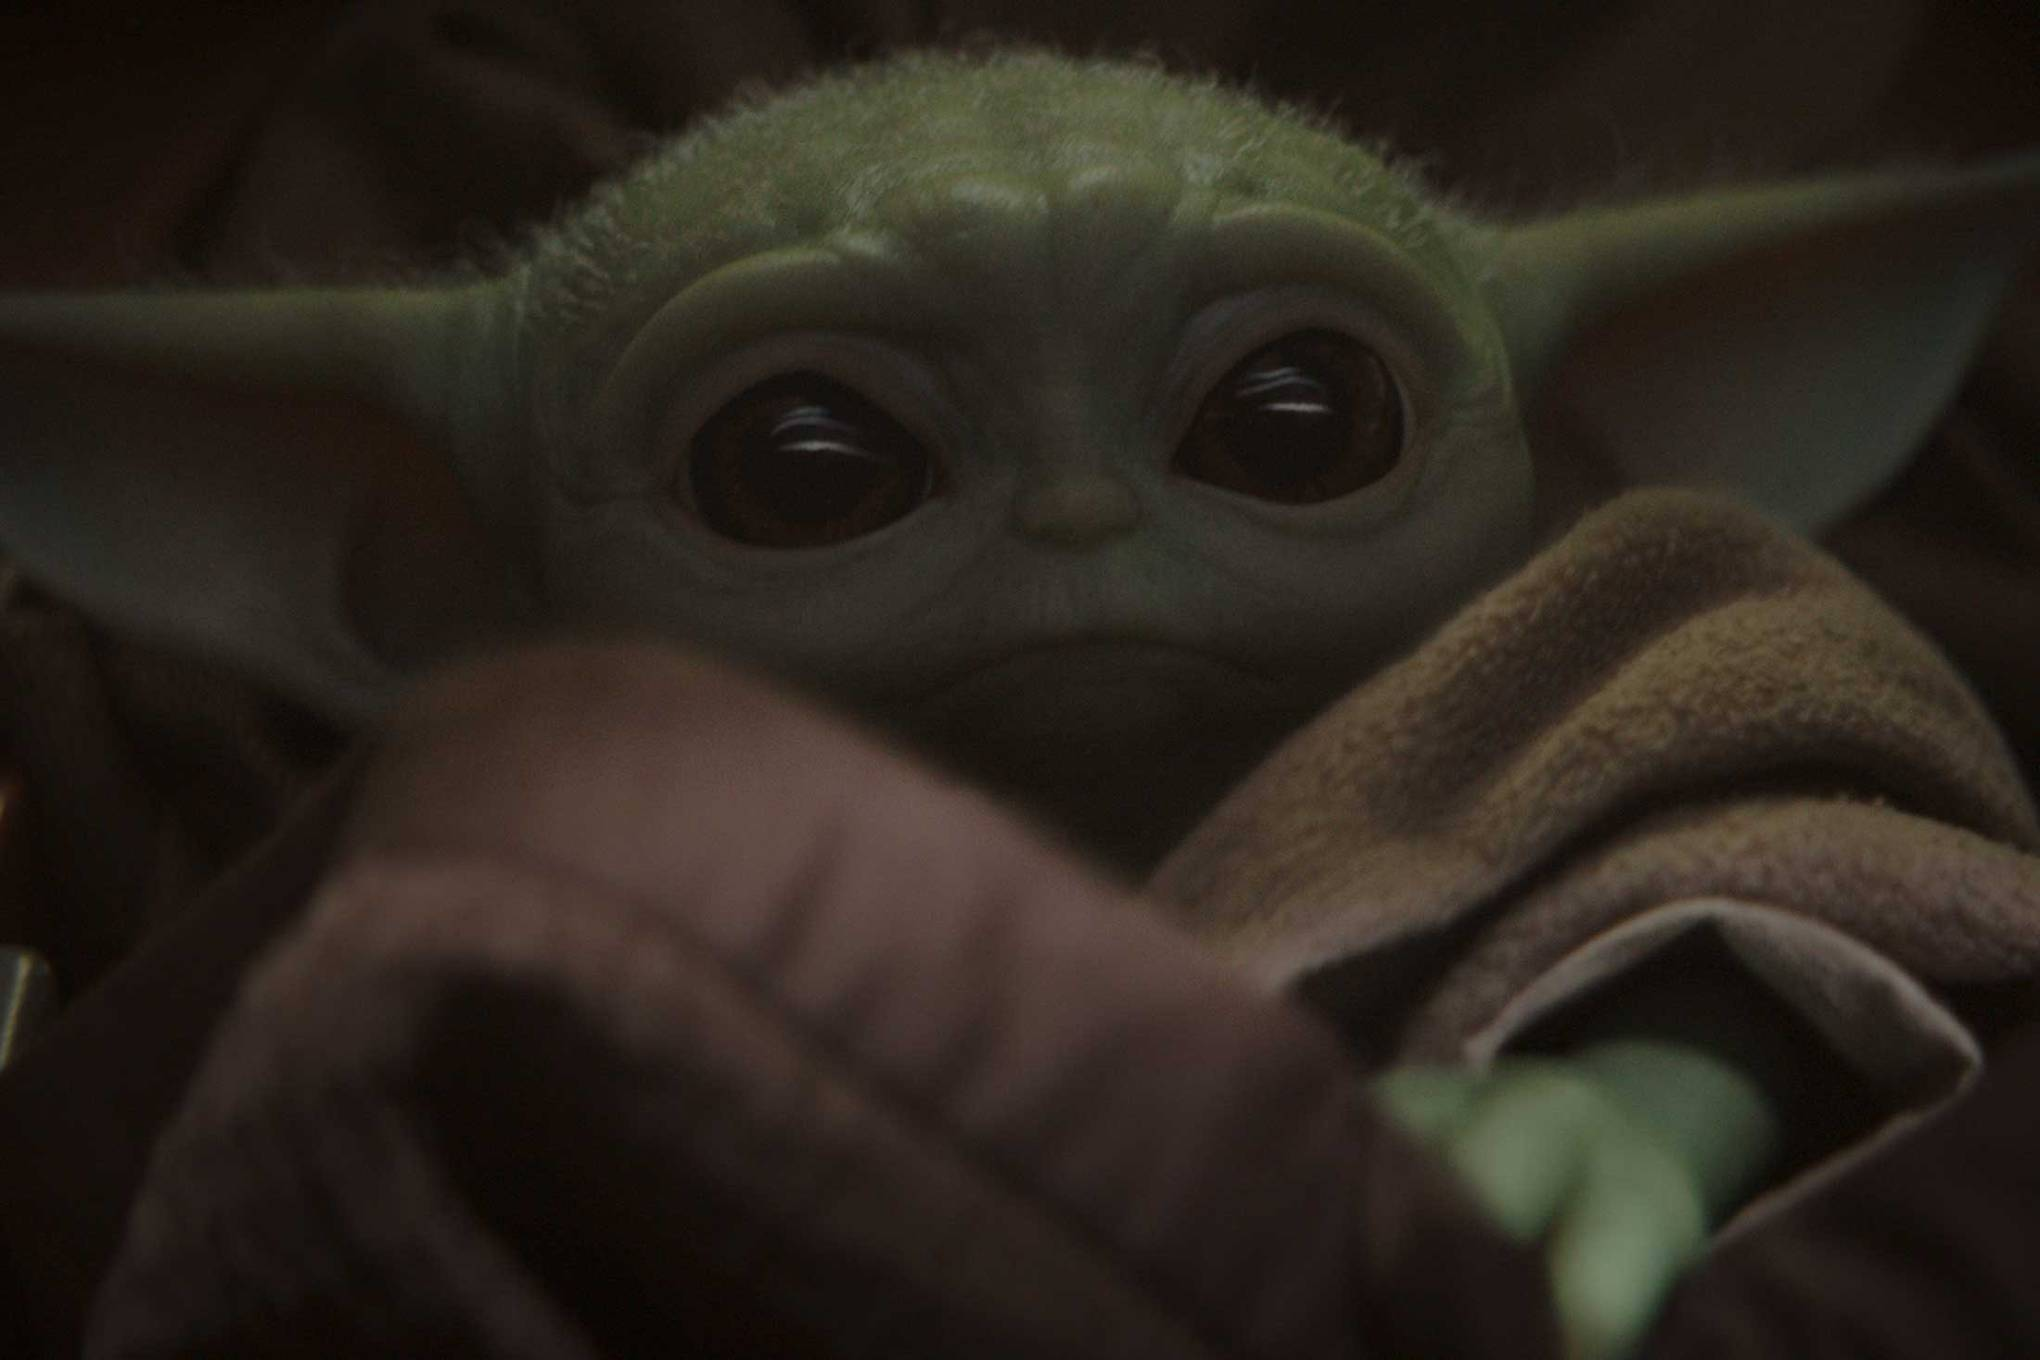 The Baby Yoda gif debacle exposes the messy world of meme law